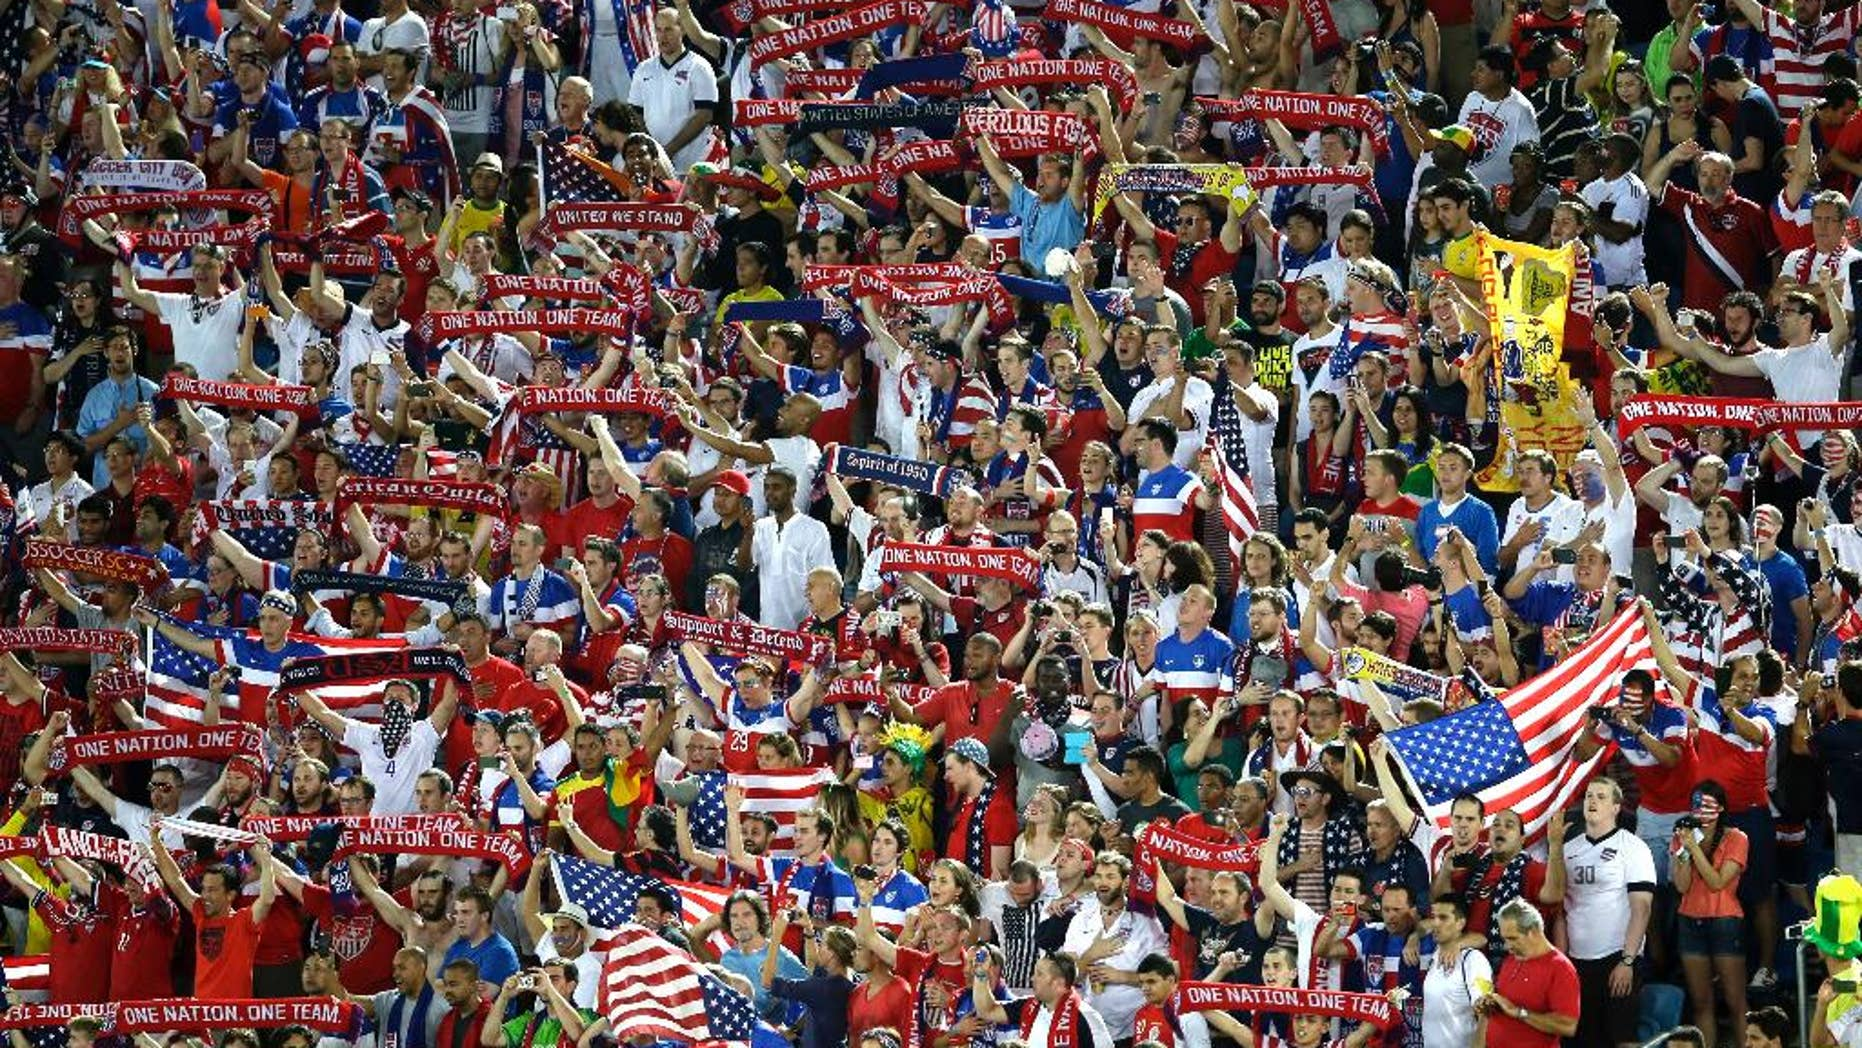 United States fans hold scarfs prior to the group G World Cup soccer match between Ghana and the United States at the Arena das Dunas in Natal, Brazil, Monday, June 16, 2014. (AP Photo/Hassan Ammar)